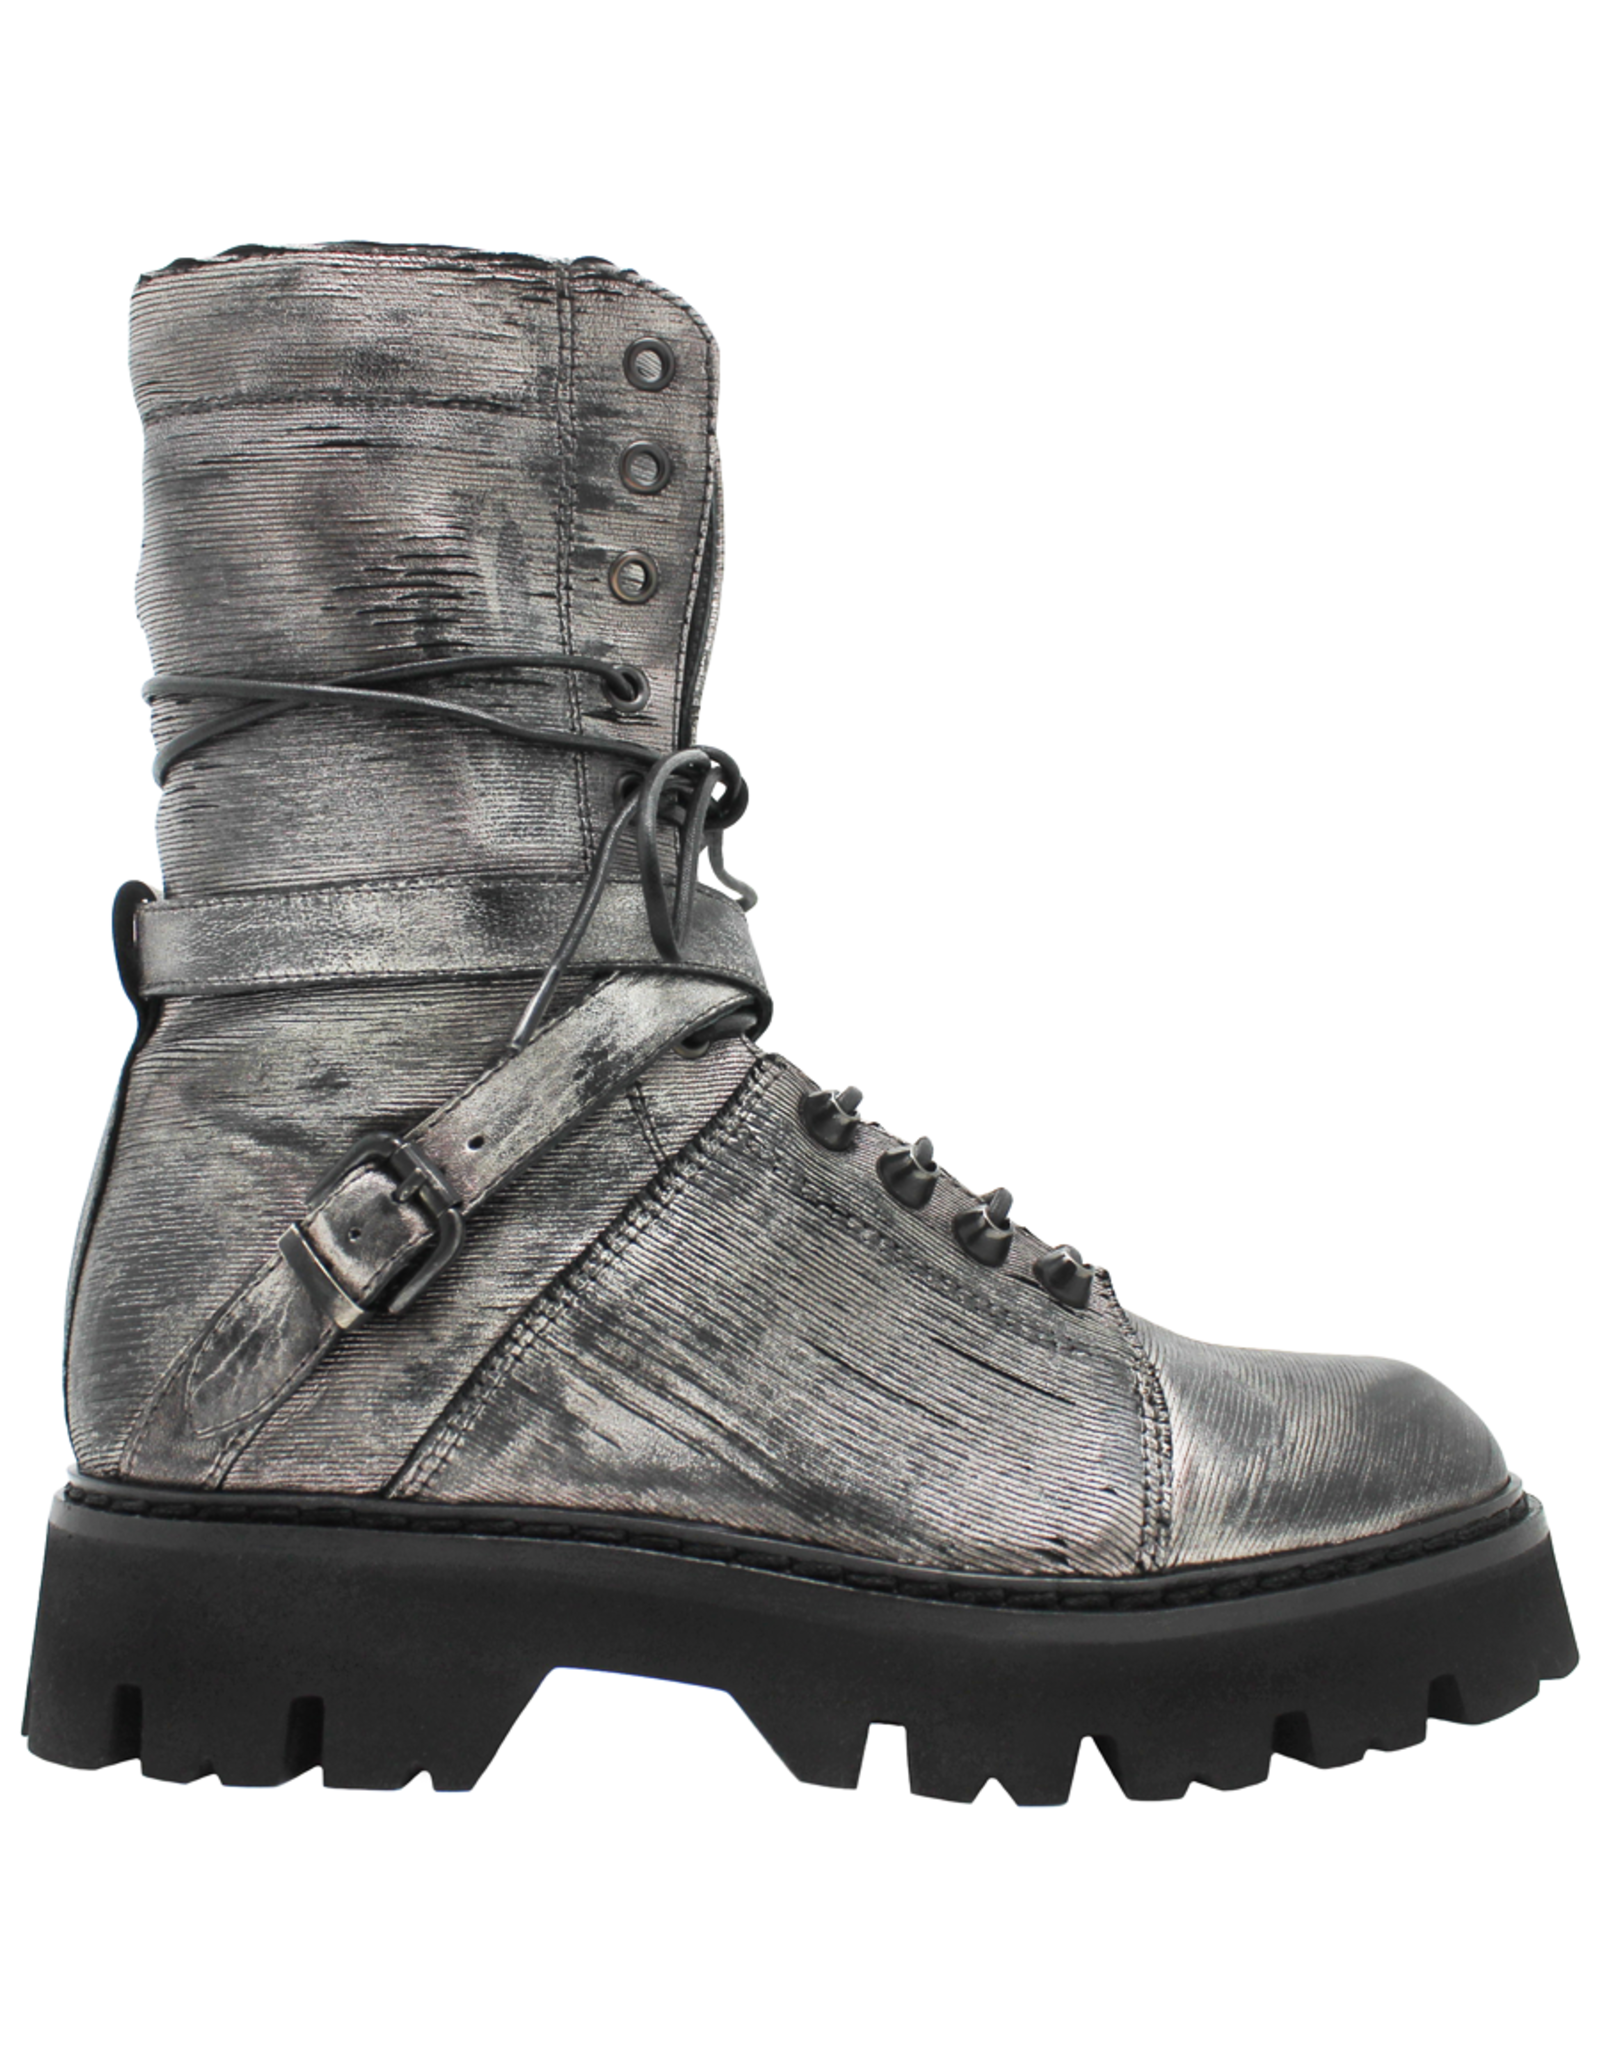 Now Now Silver Lace-Up Tread Bottom With Criss Cross Buckle 6533